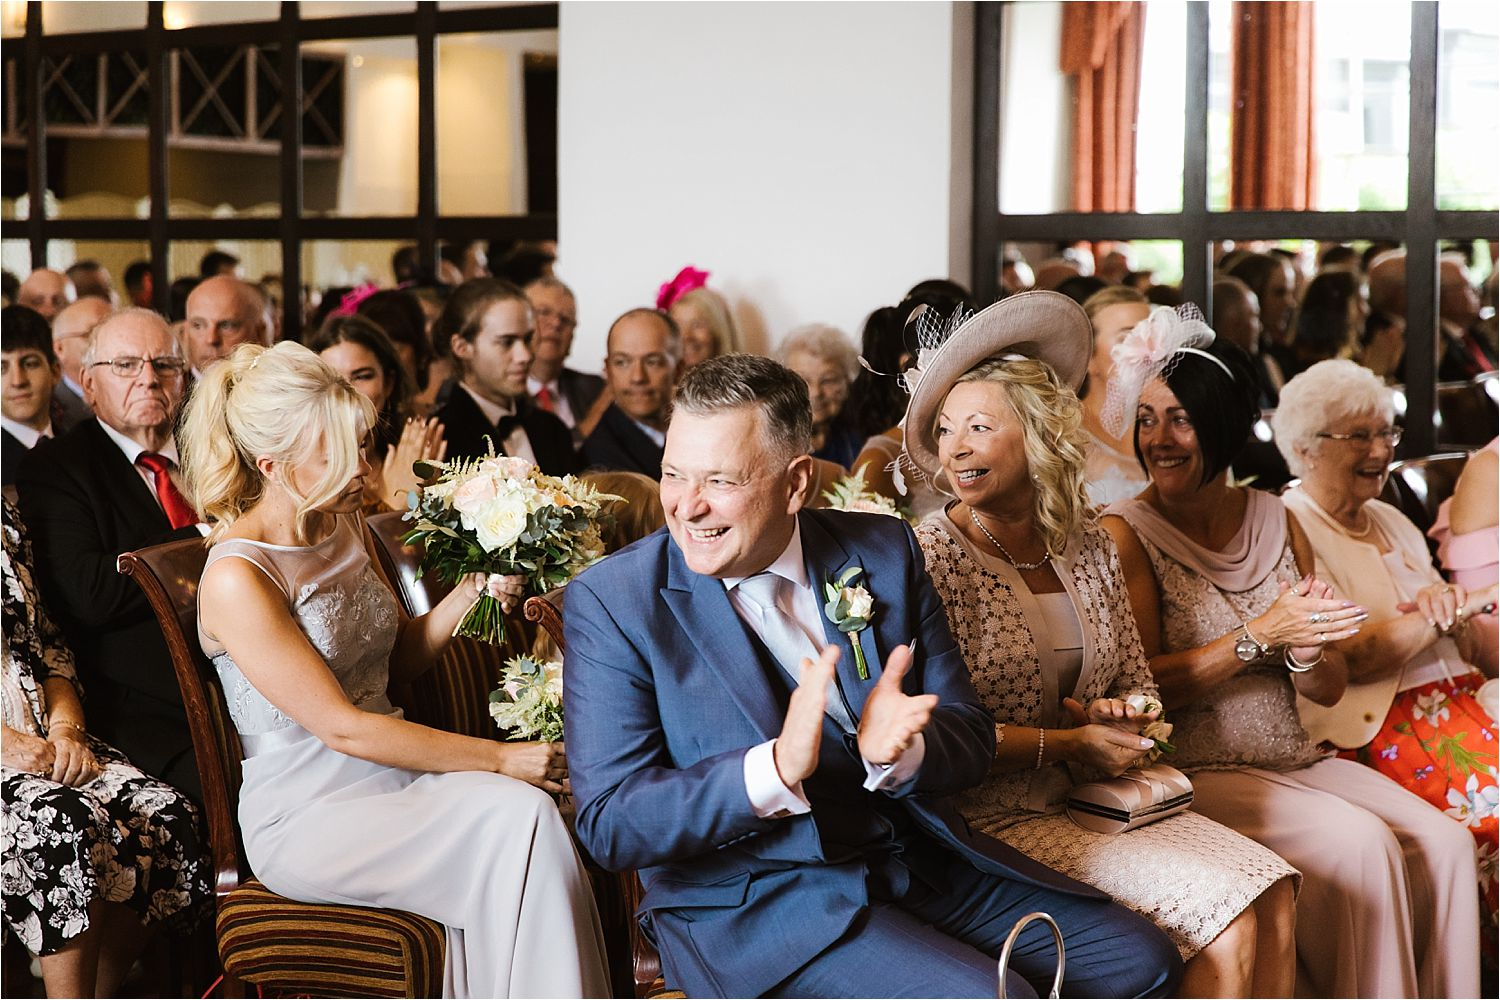 Bride's father claps during wedding ceremony at Low Wood Bay